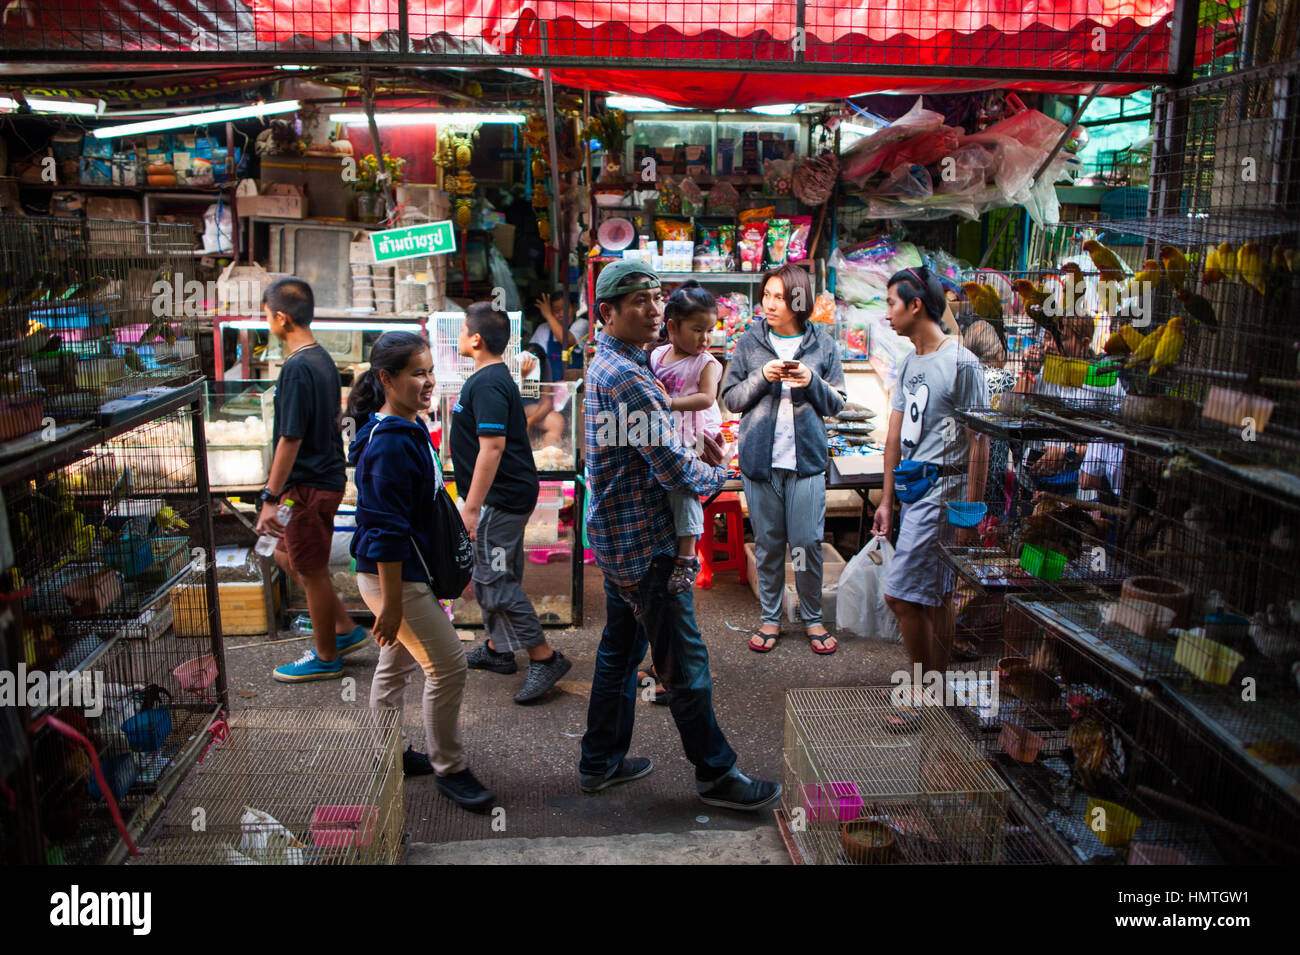 People in Chatuchak market, Bangkok - Stock Image